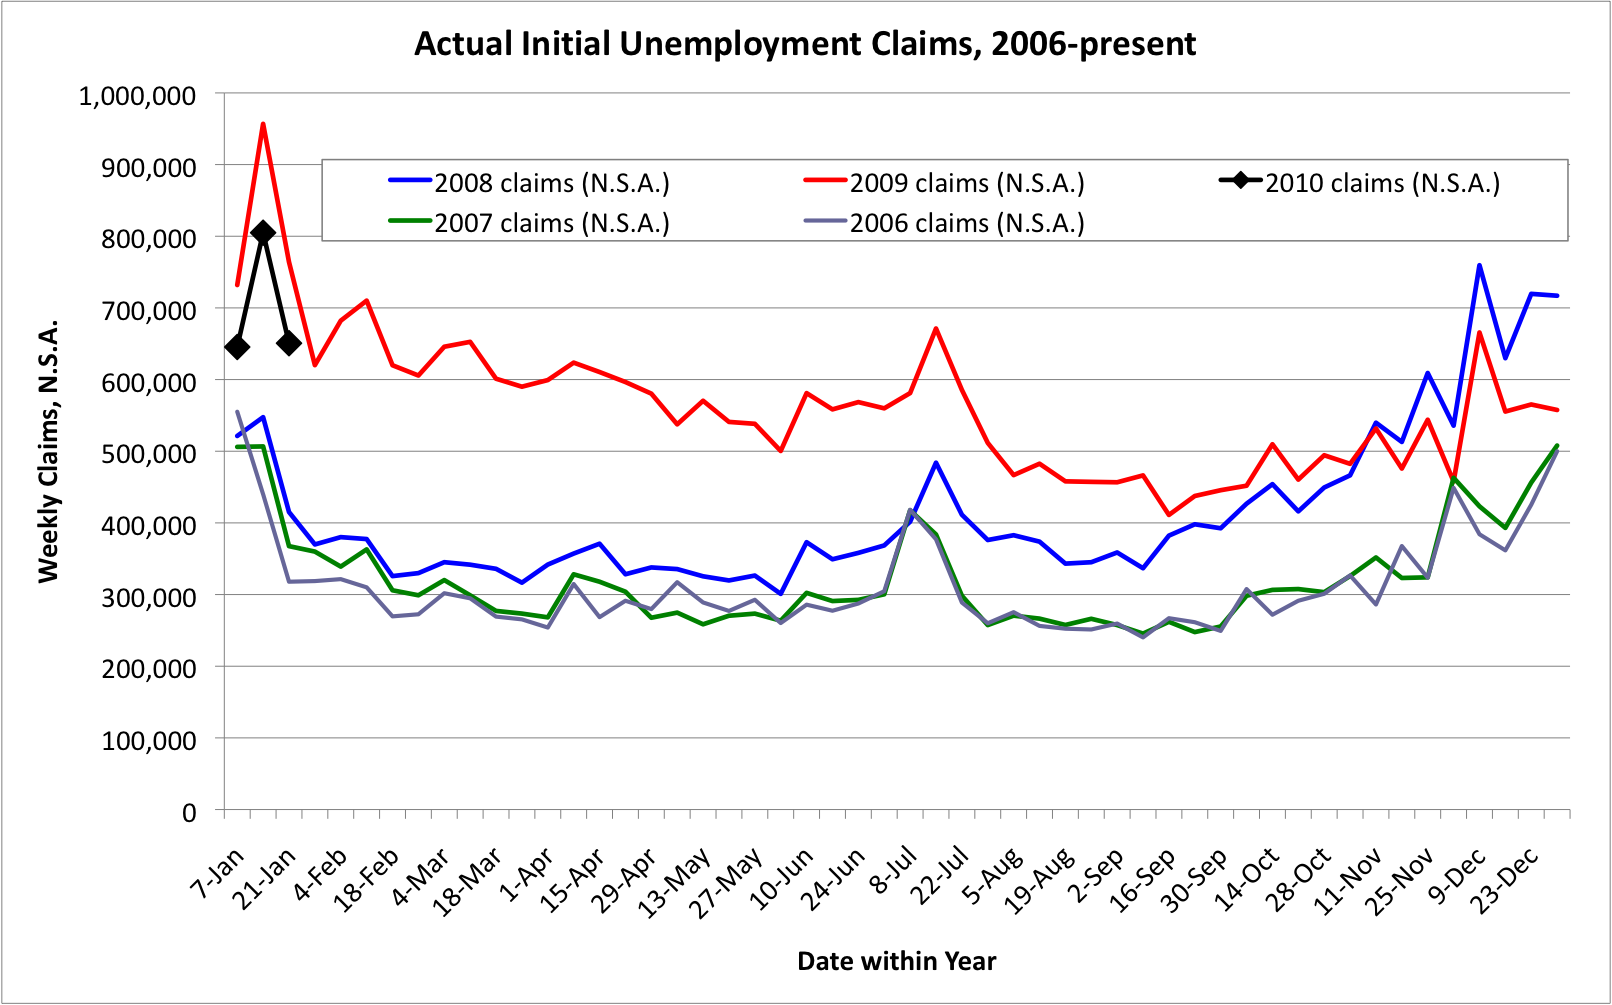 Weekly Unemployment Claims, N.S.A., 2006-present, 2010-01-21